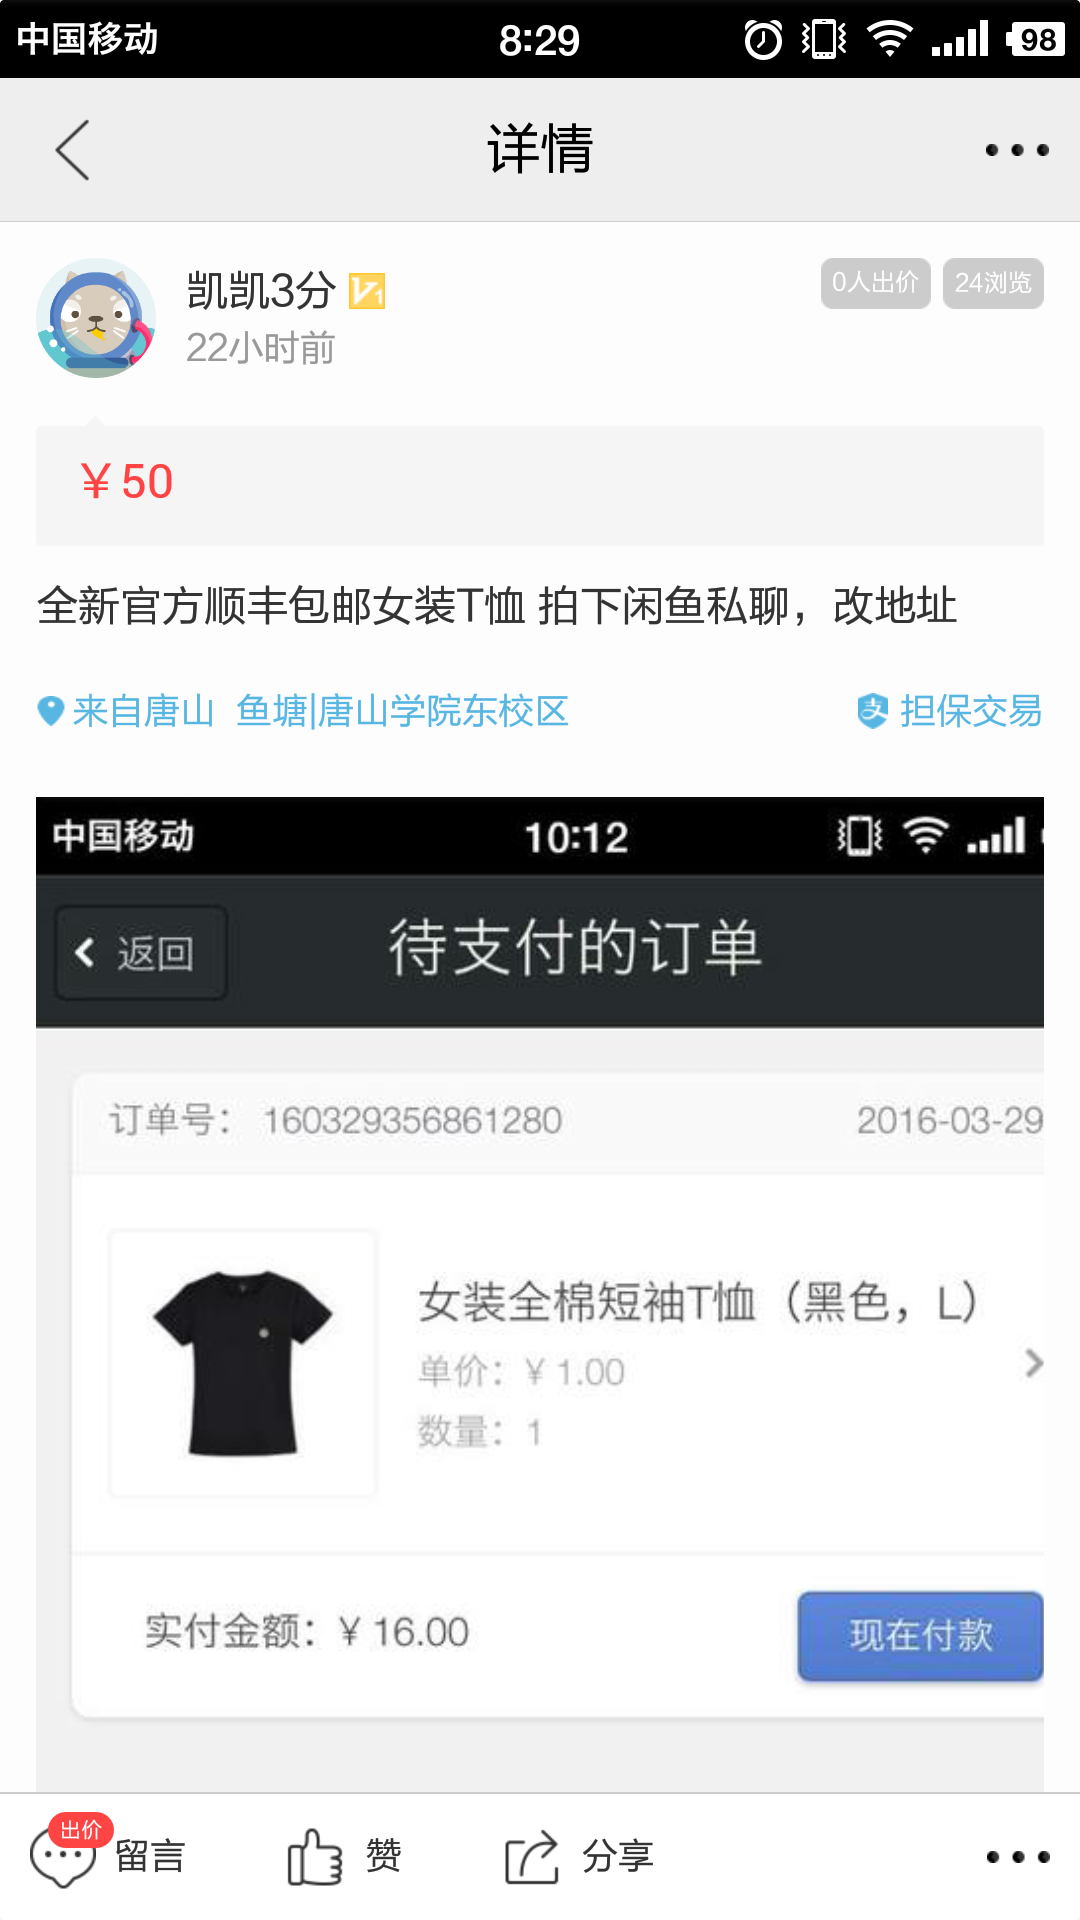 Screenshot_2016-03-30-08-29-37-980_闲鱼.png